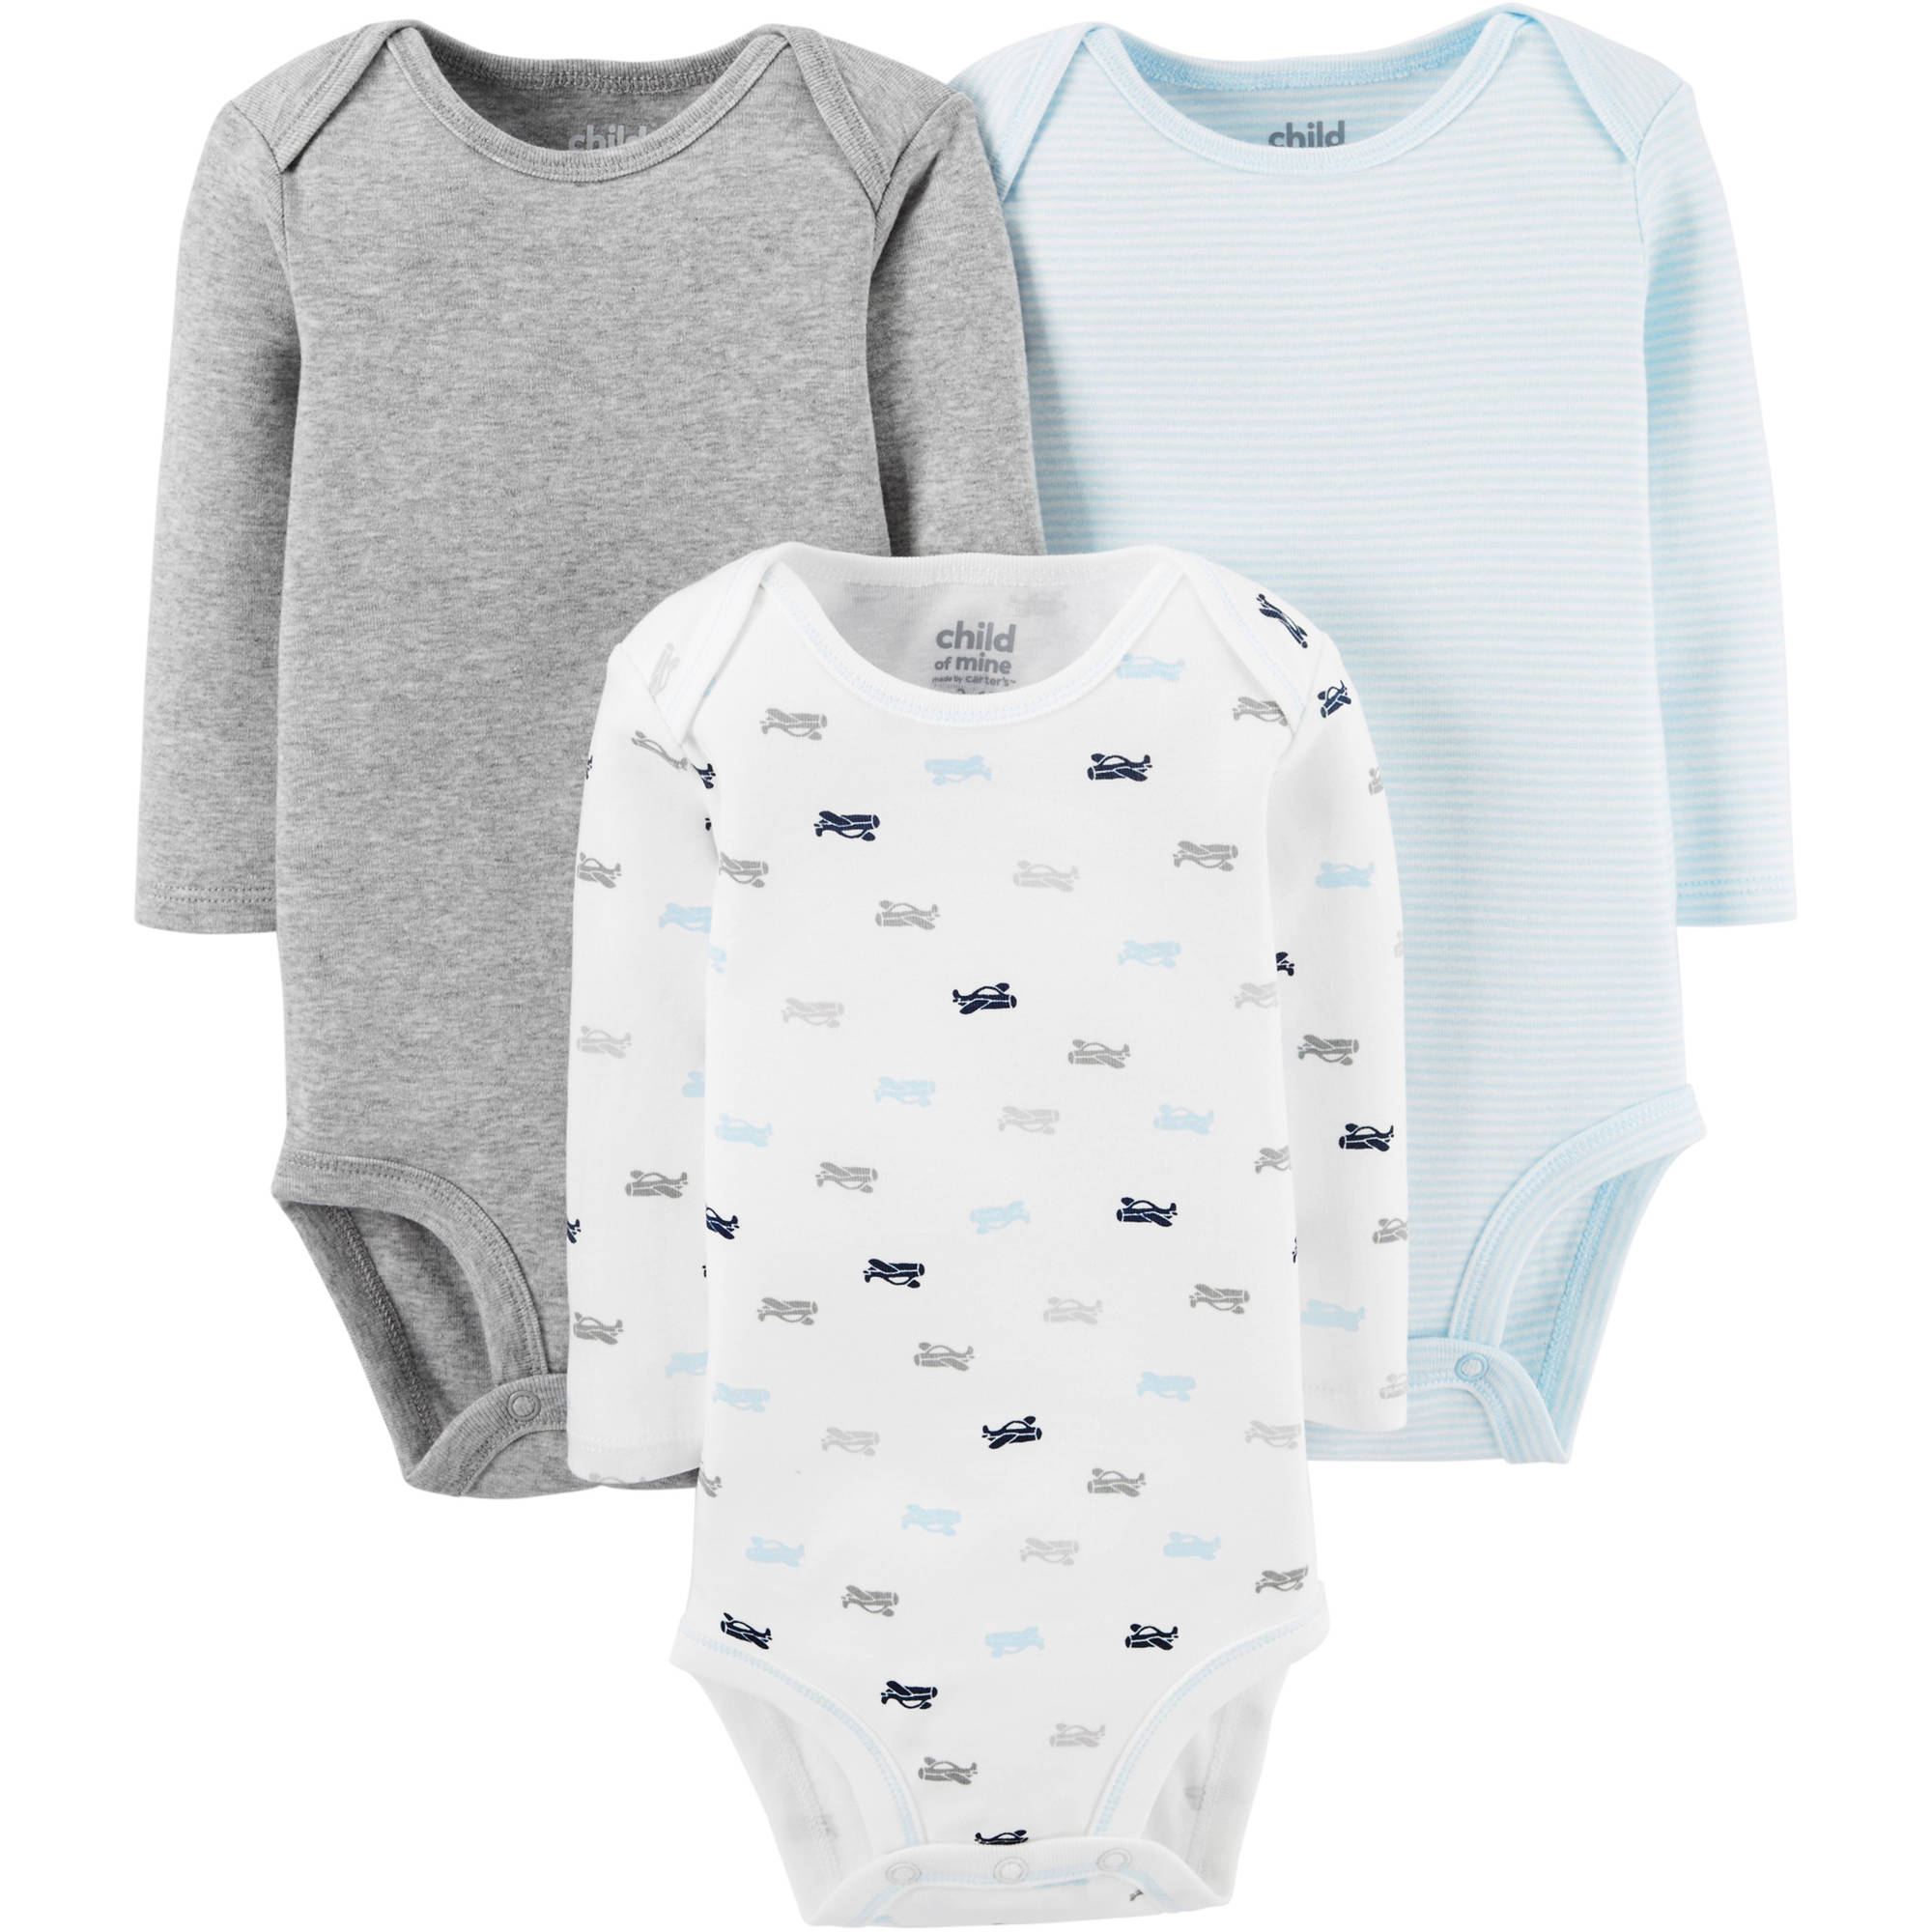 Child Of Mine By Carter's Newborn Baby Boy Long Sleeve Bodysuits, 3-Pack